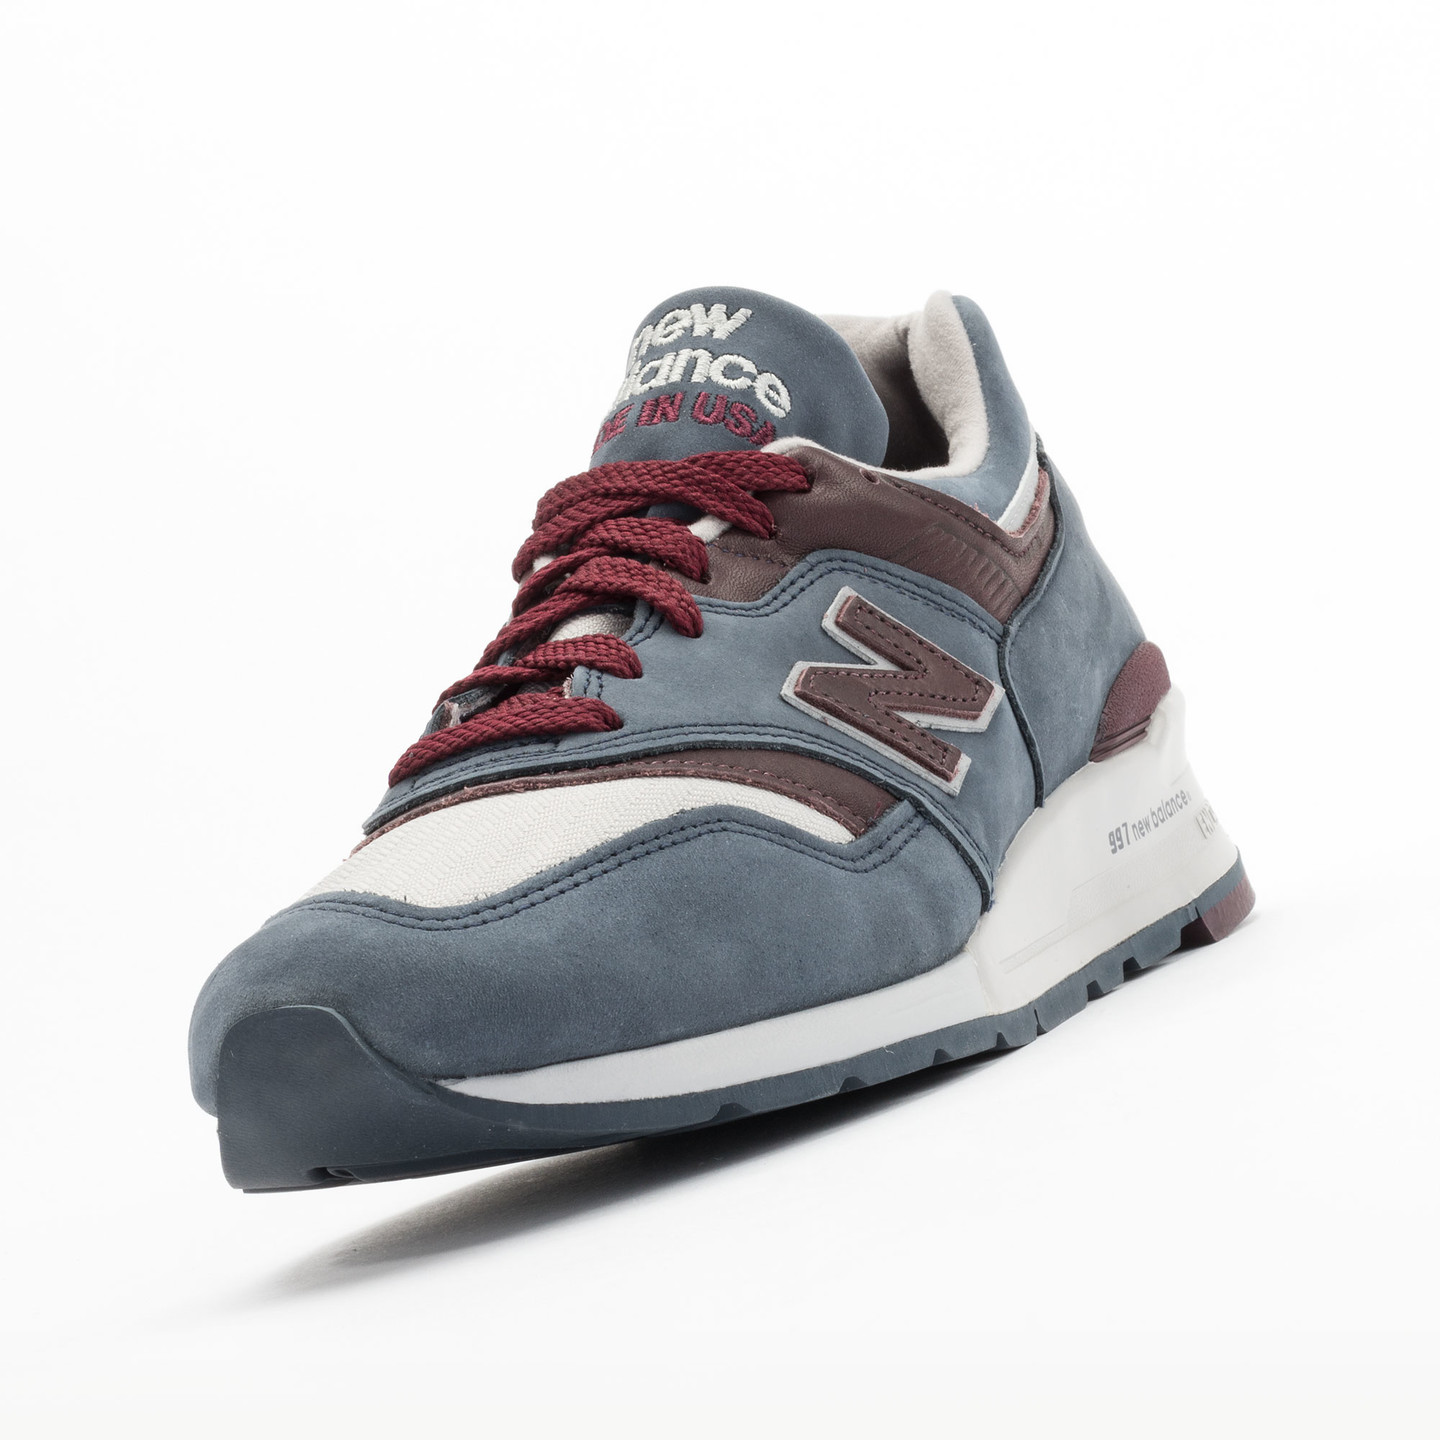 New Balance M997 DGM - Made in USA Grey Steel / Burgundy M997DGM-42